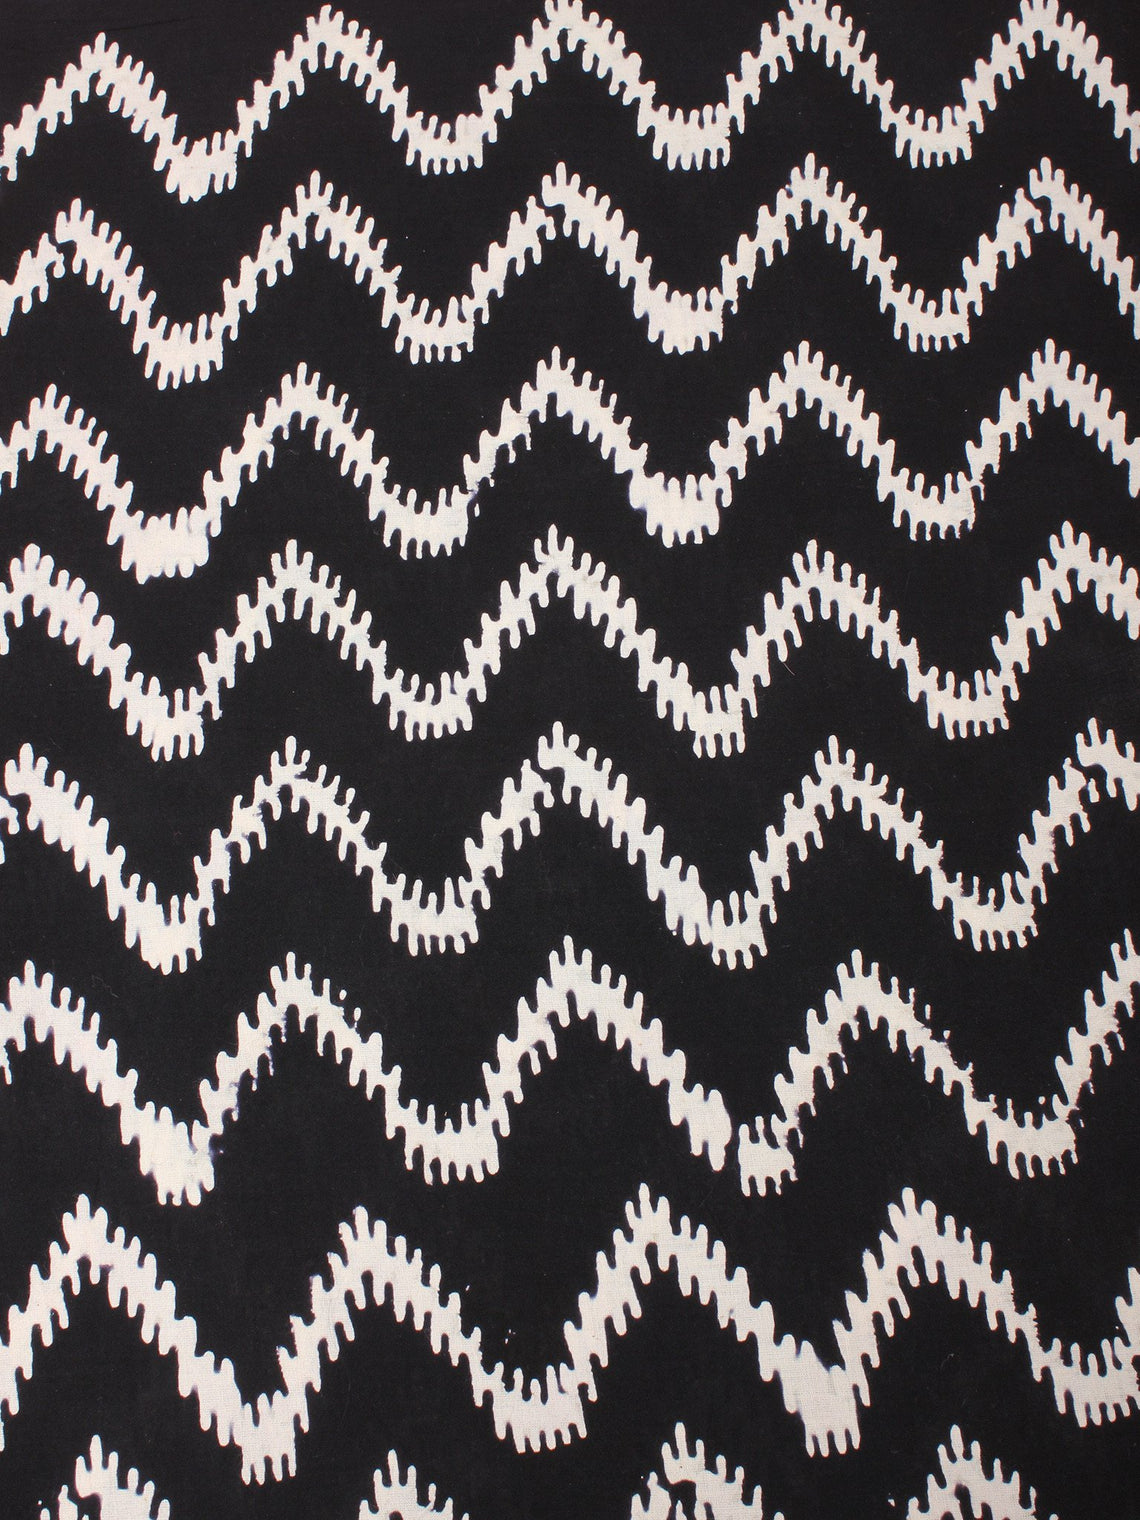 Black and White Natural Dyed Hand Block Printed Cotton Fabric Per Meter - F0916201